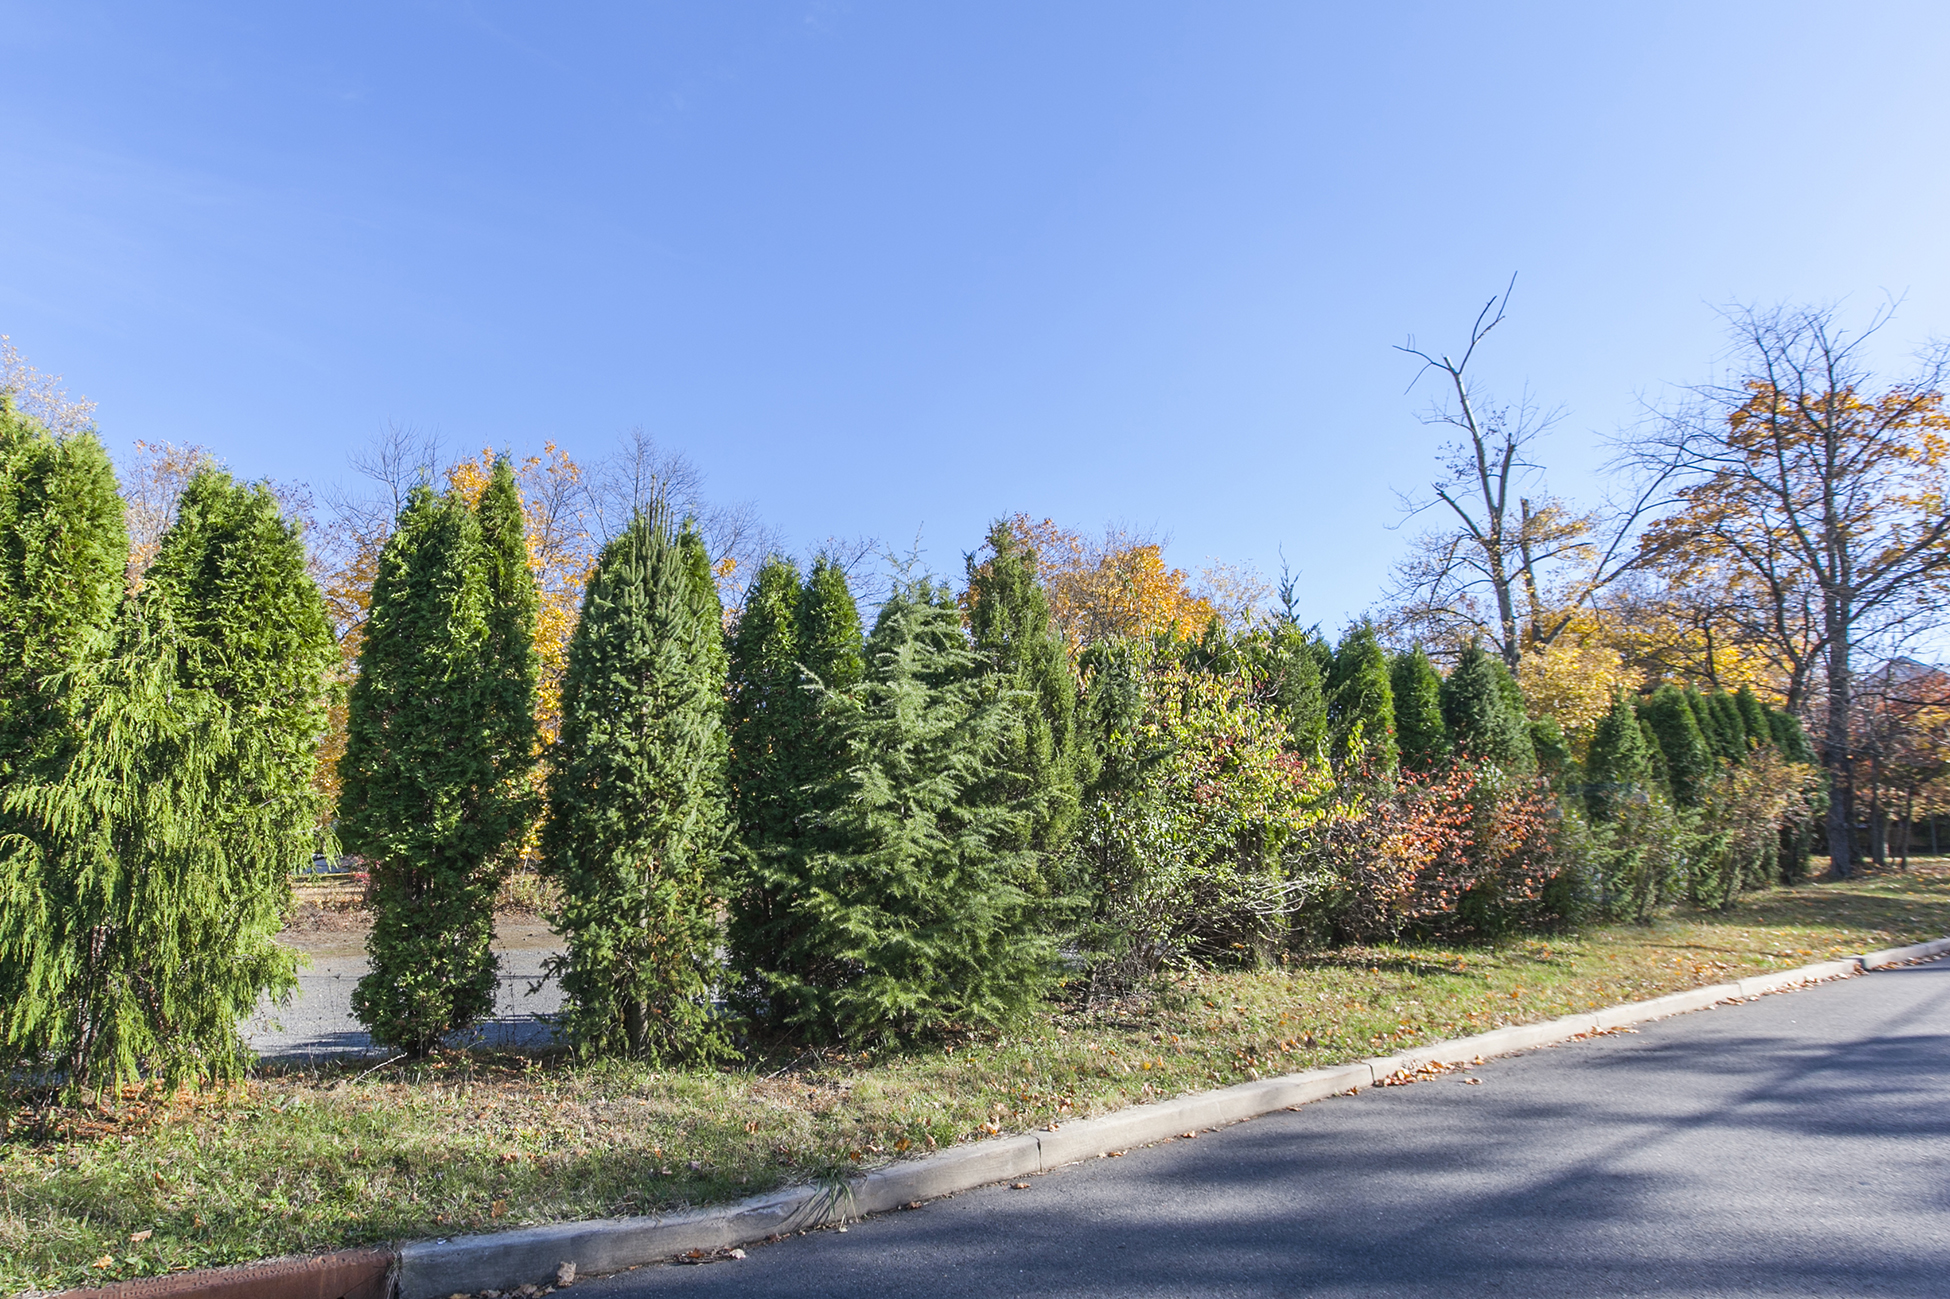 Land for Sale at Build Your Dream House Here! 19 Columbia Avenue Hopewell, New Jersey 08525 United States